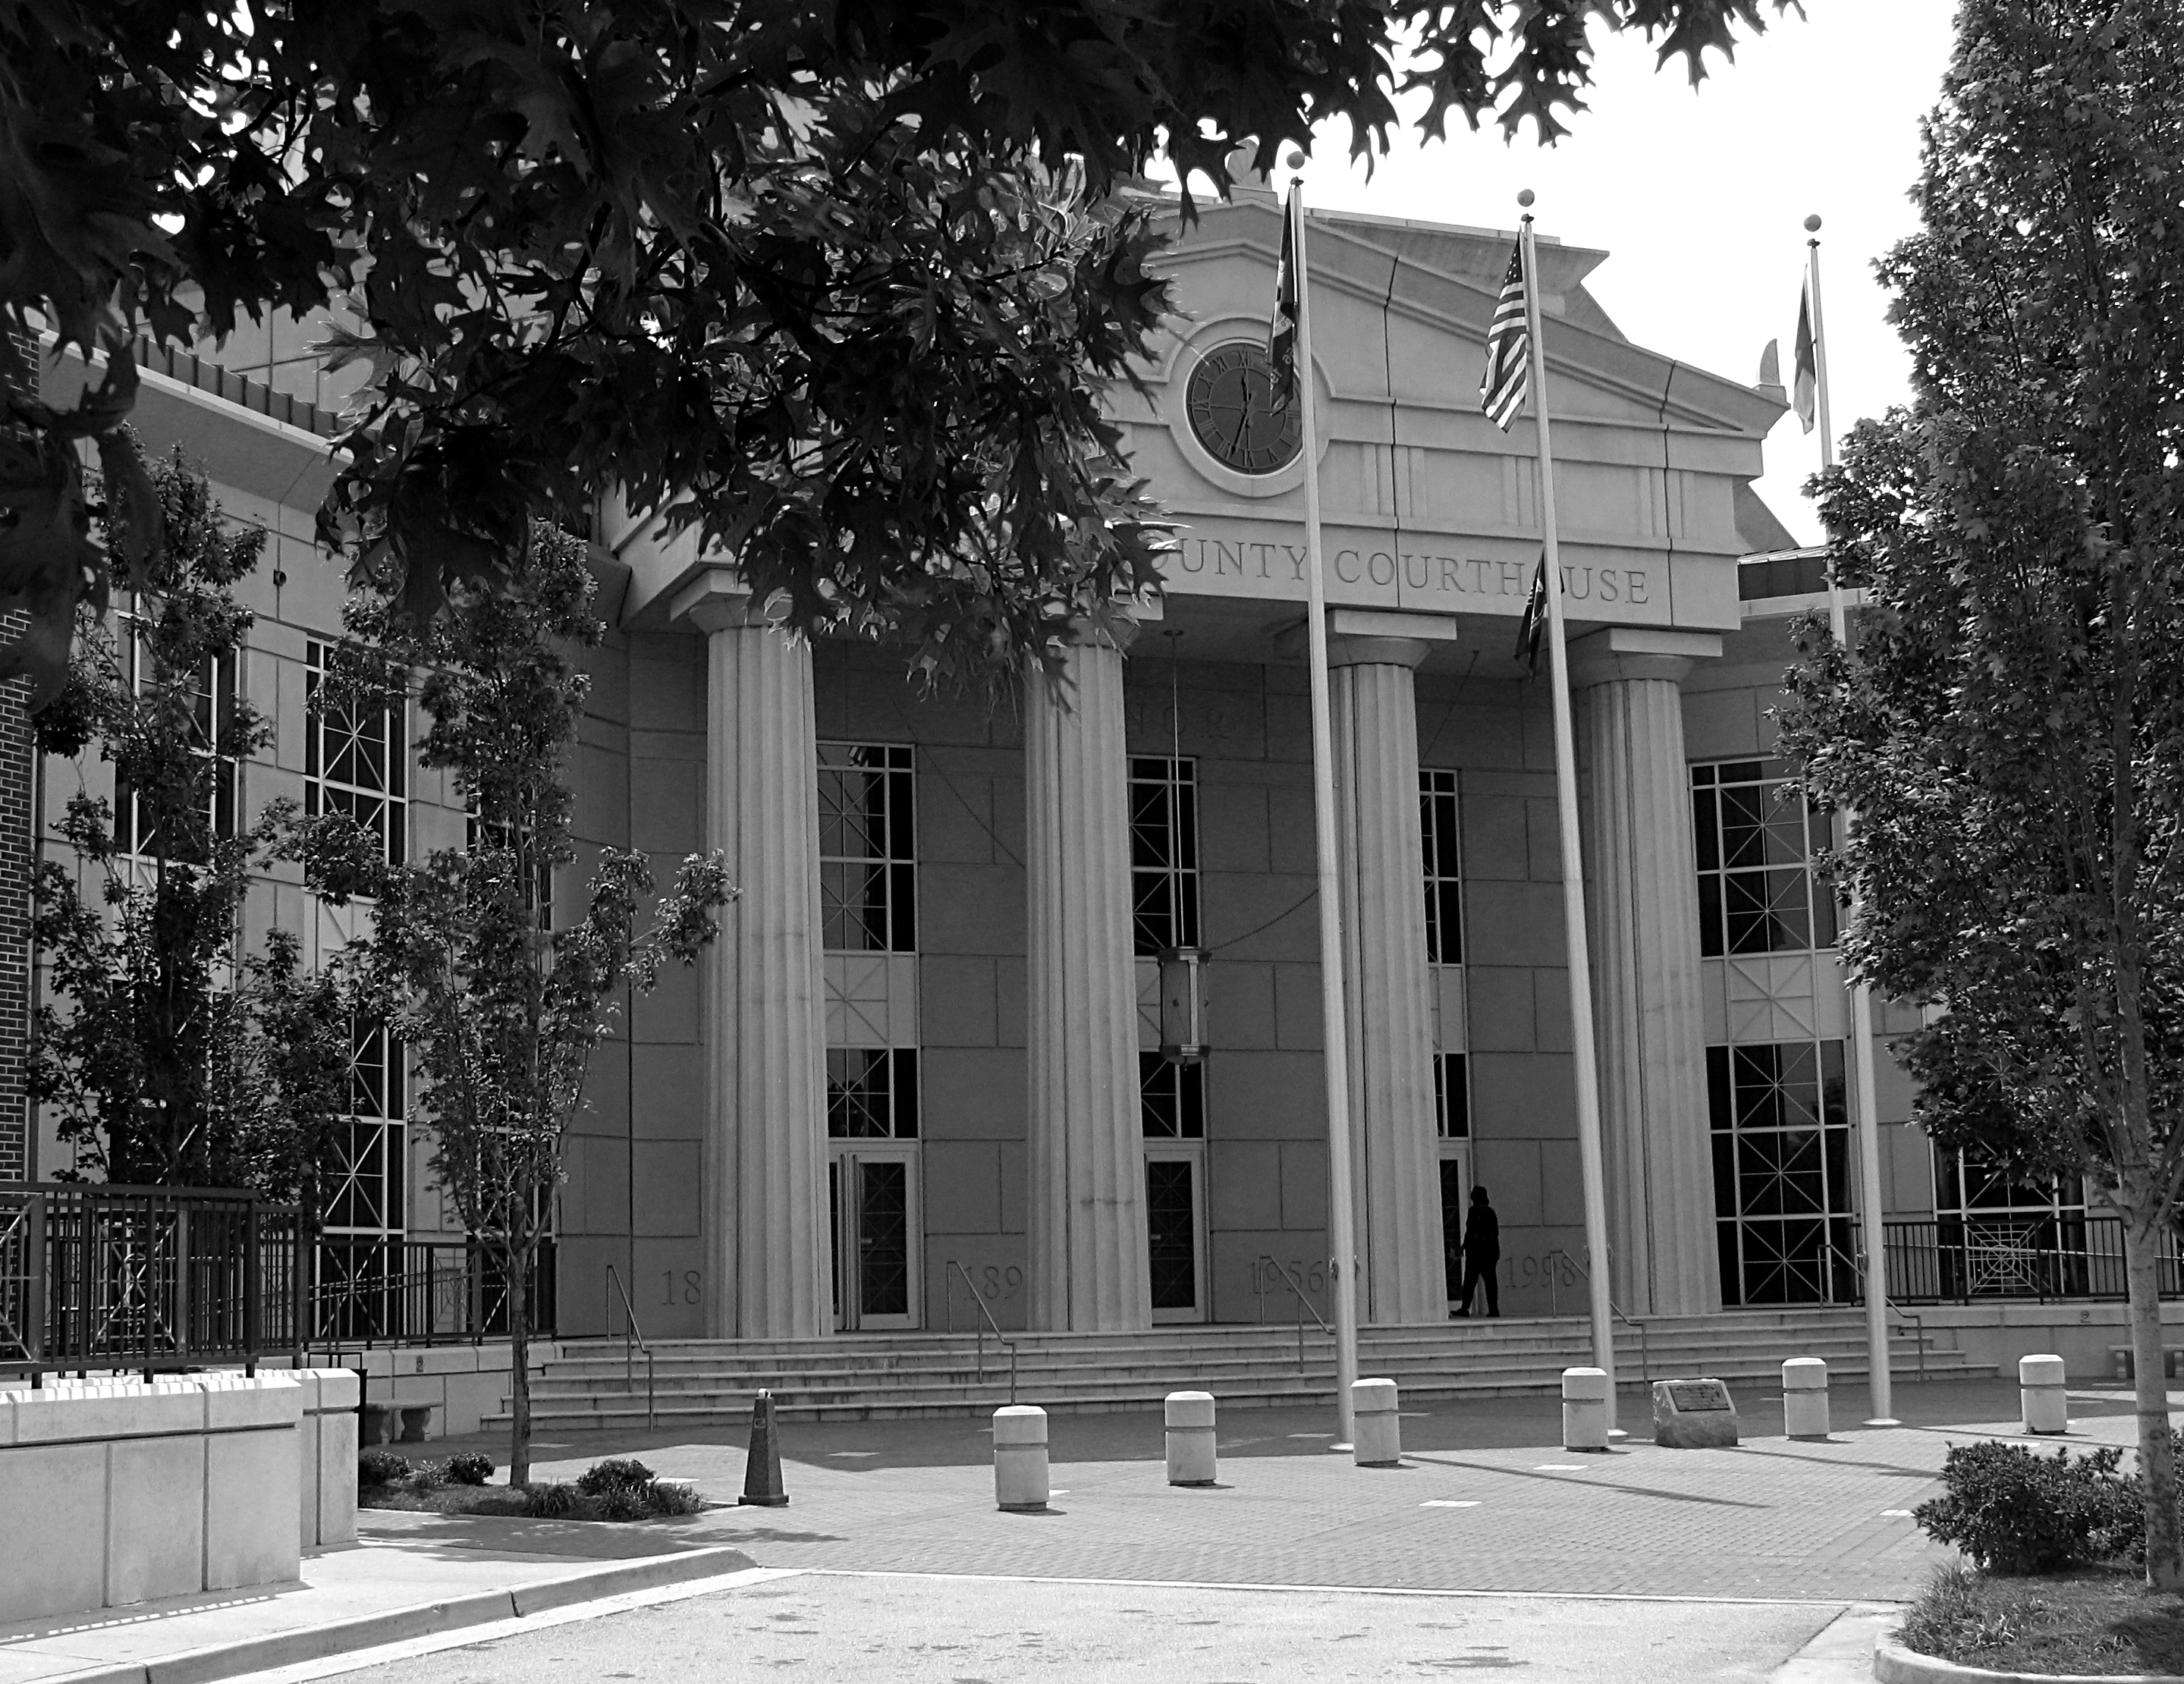 Thumbnail image for Courthouse.JPG